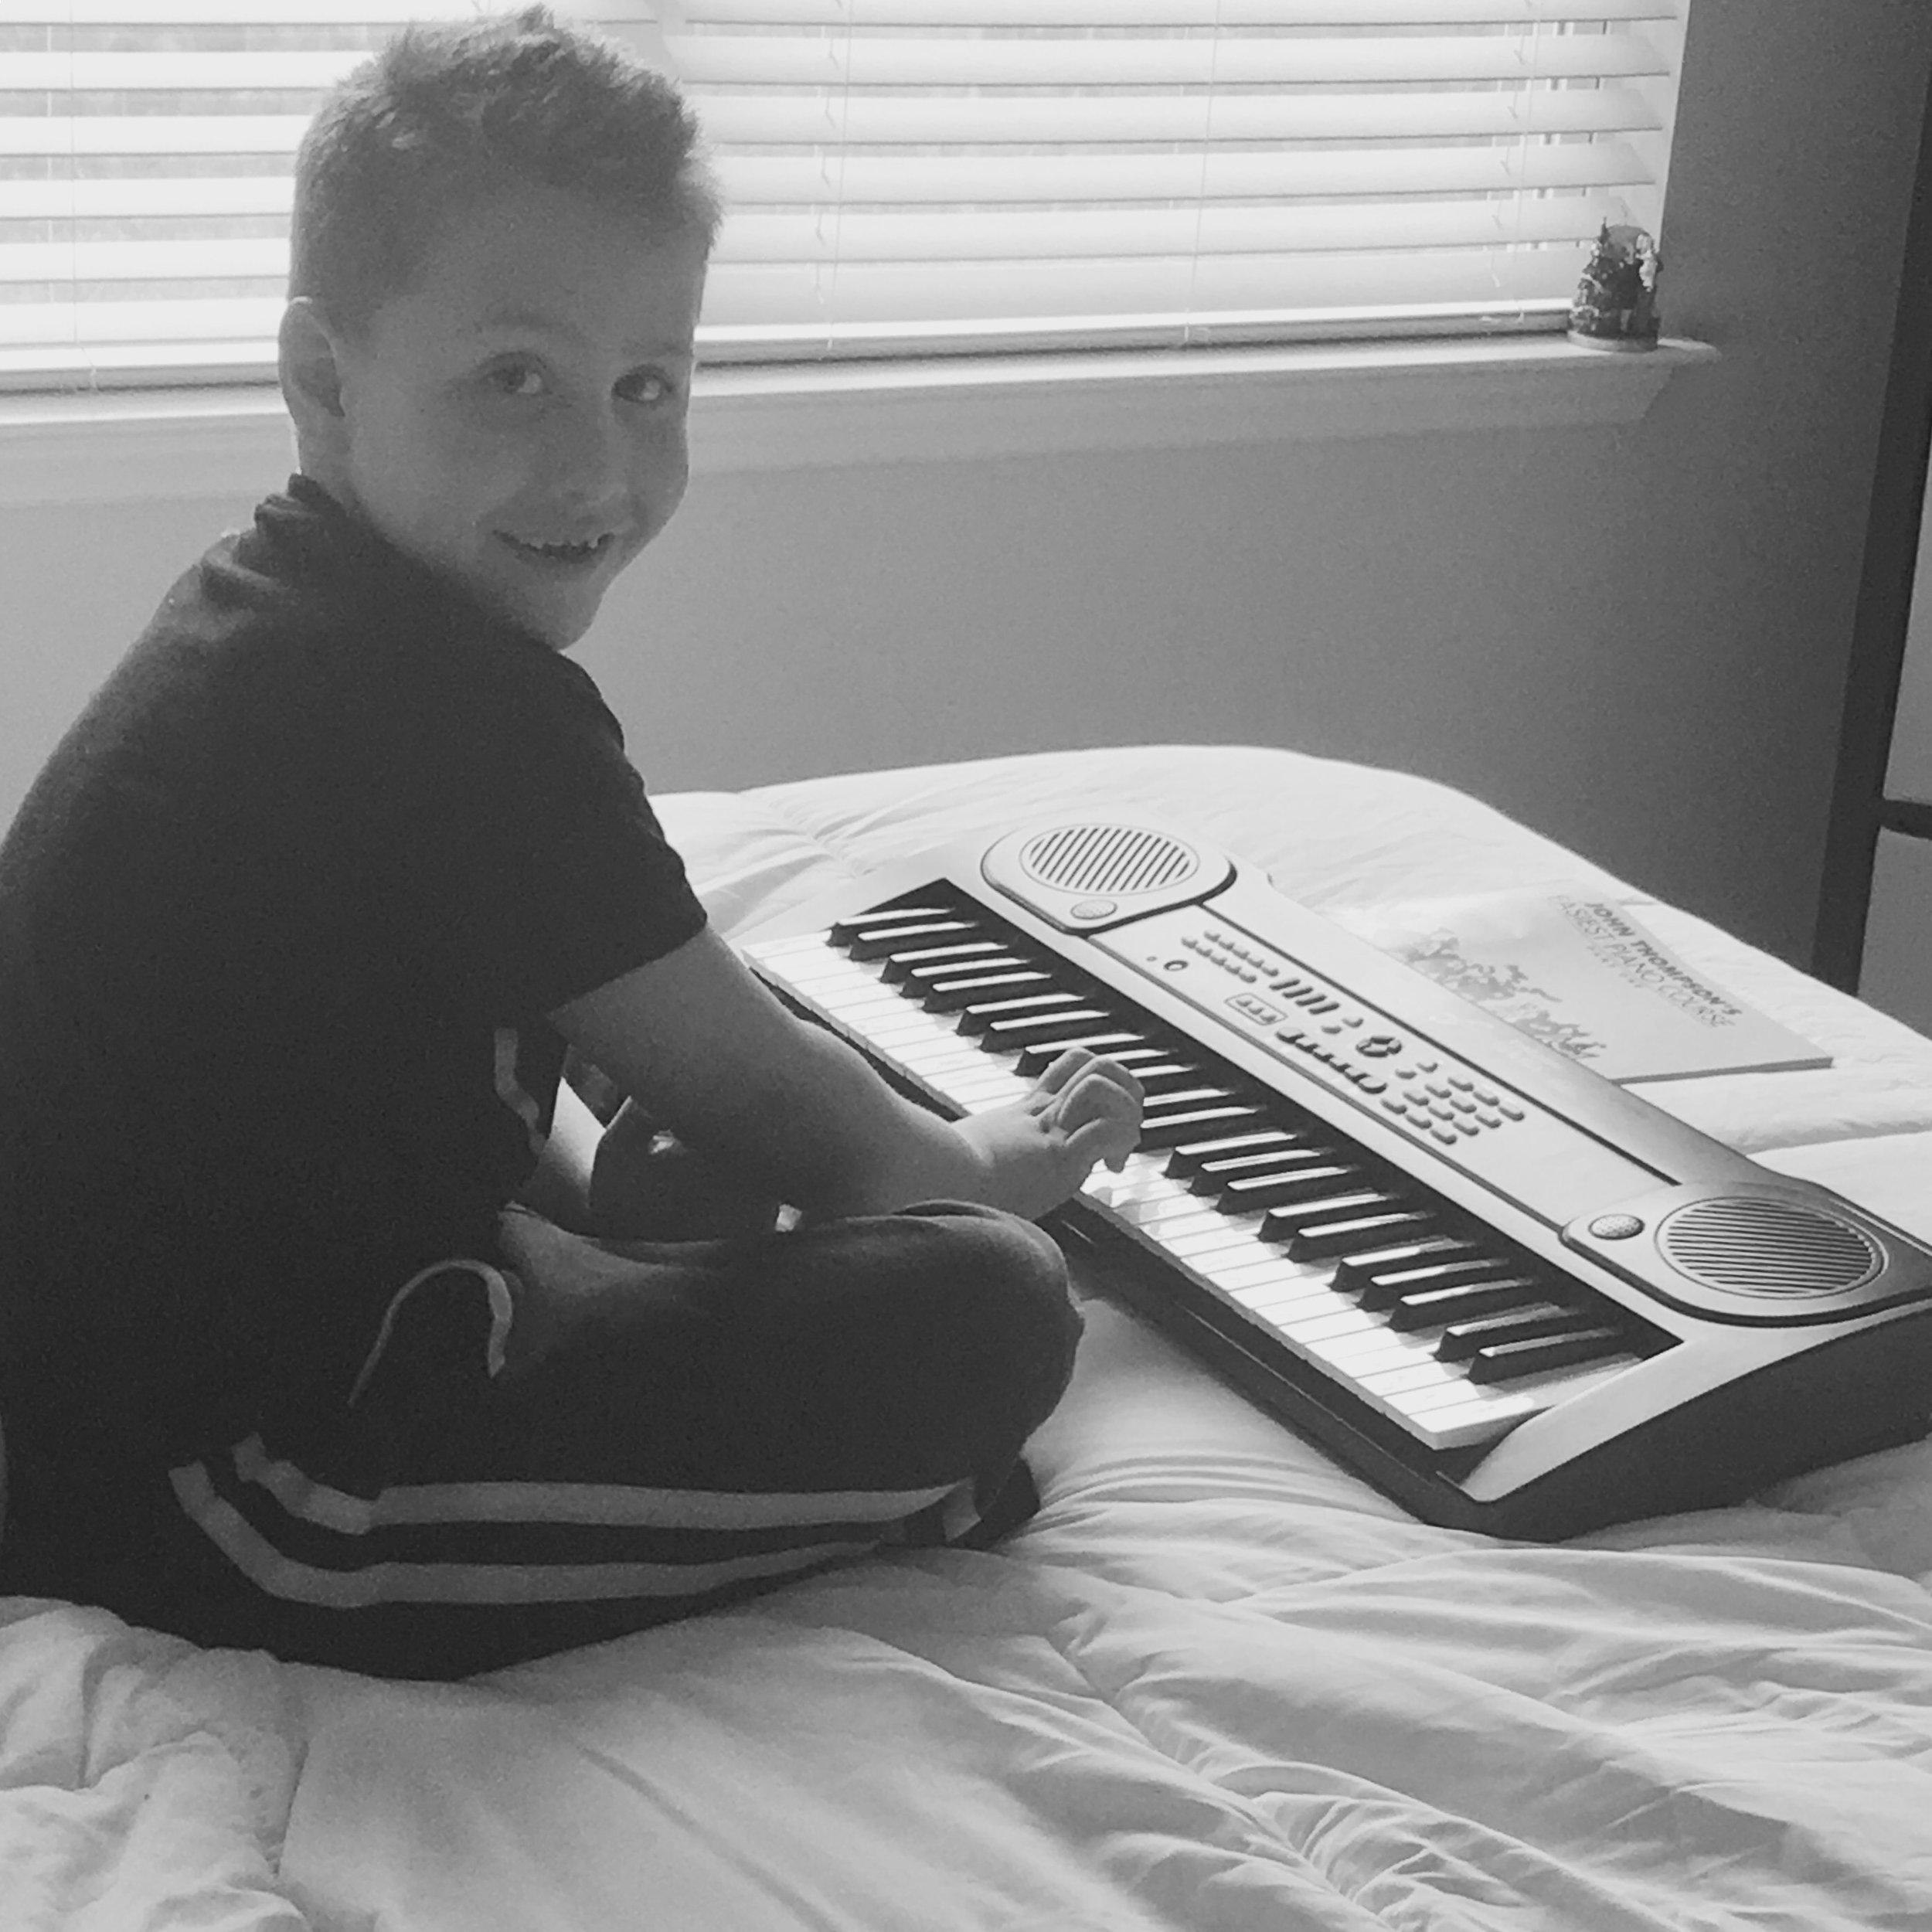 Music class consists of Momma teaching this boy how to play the piano.